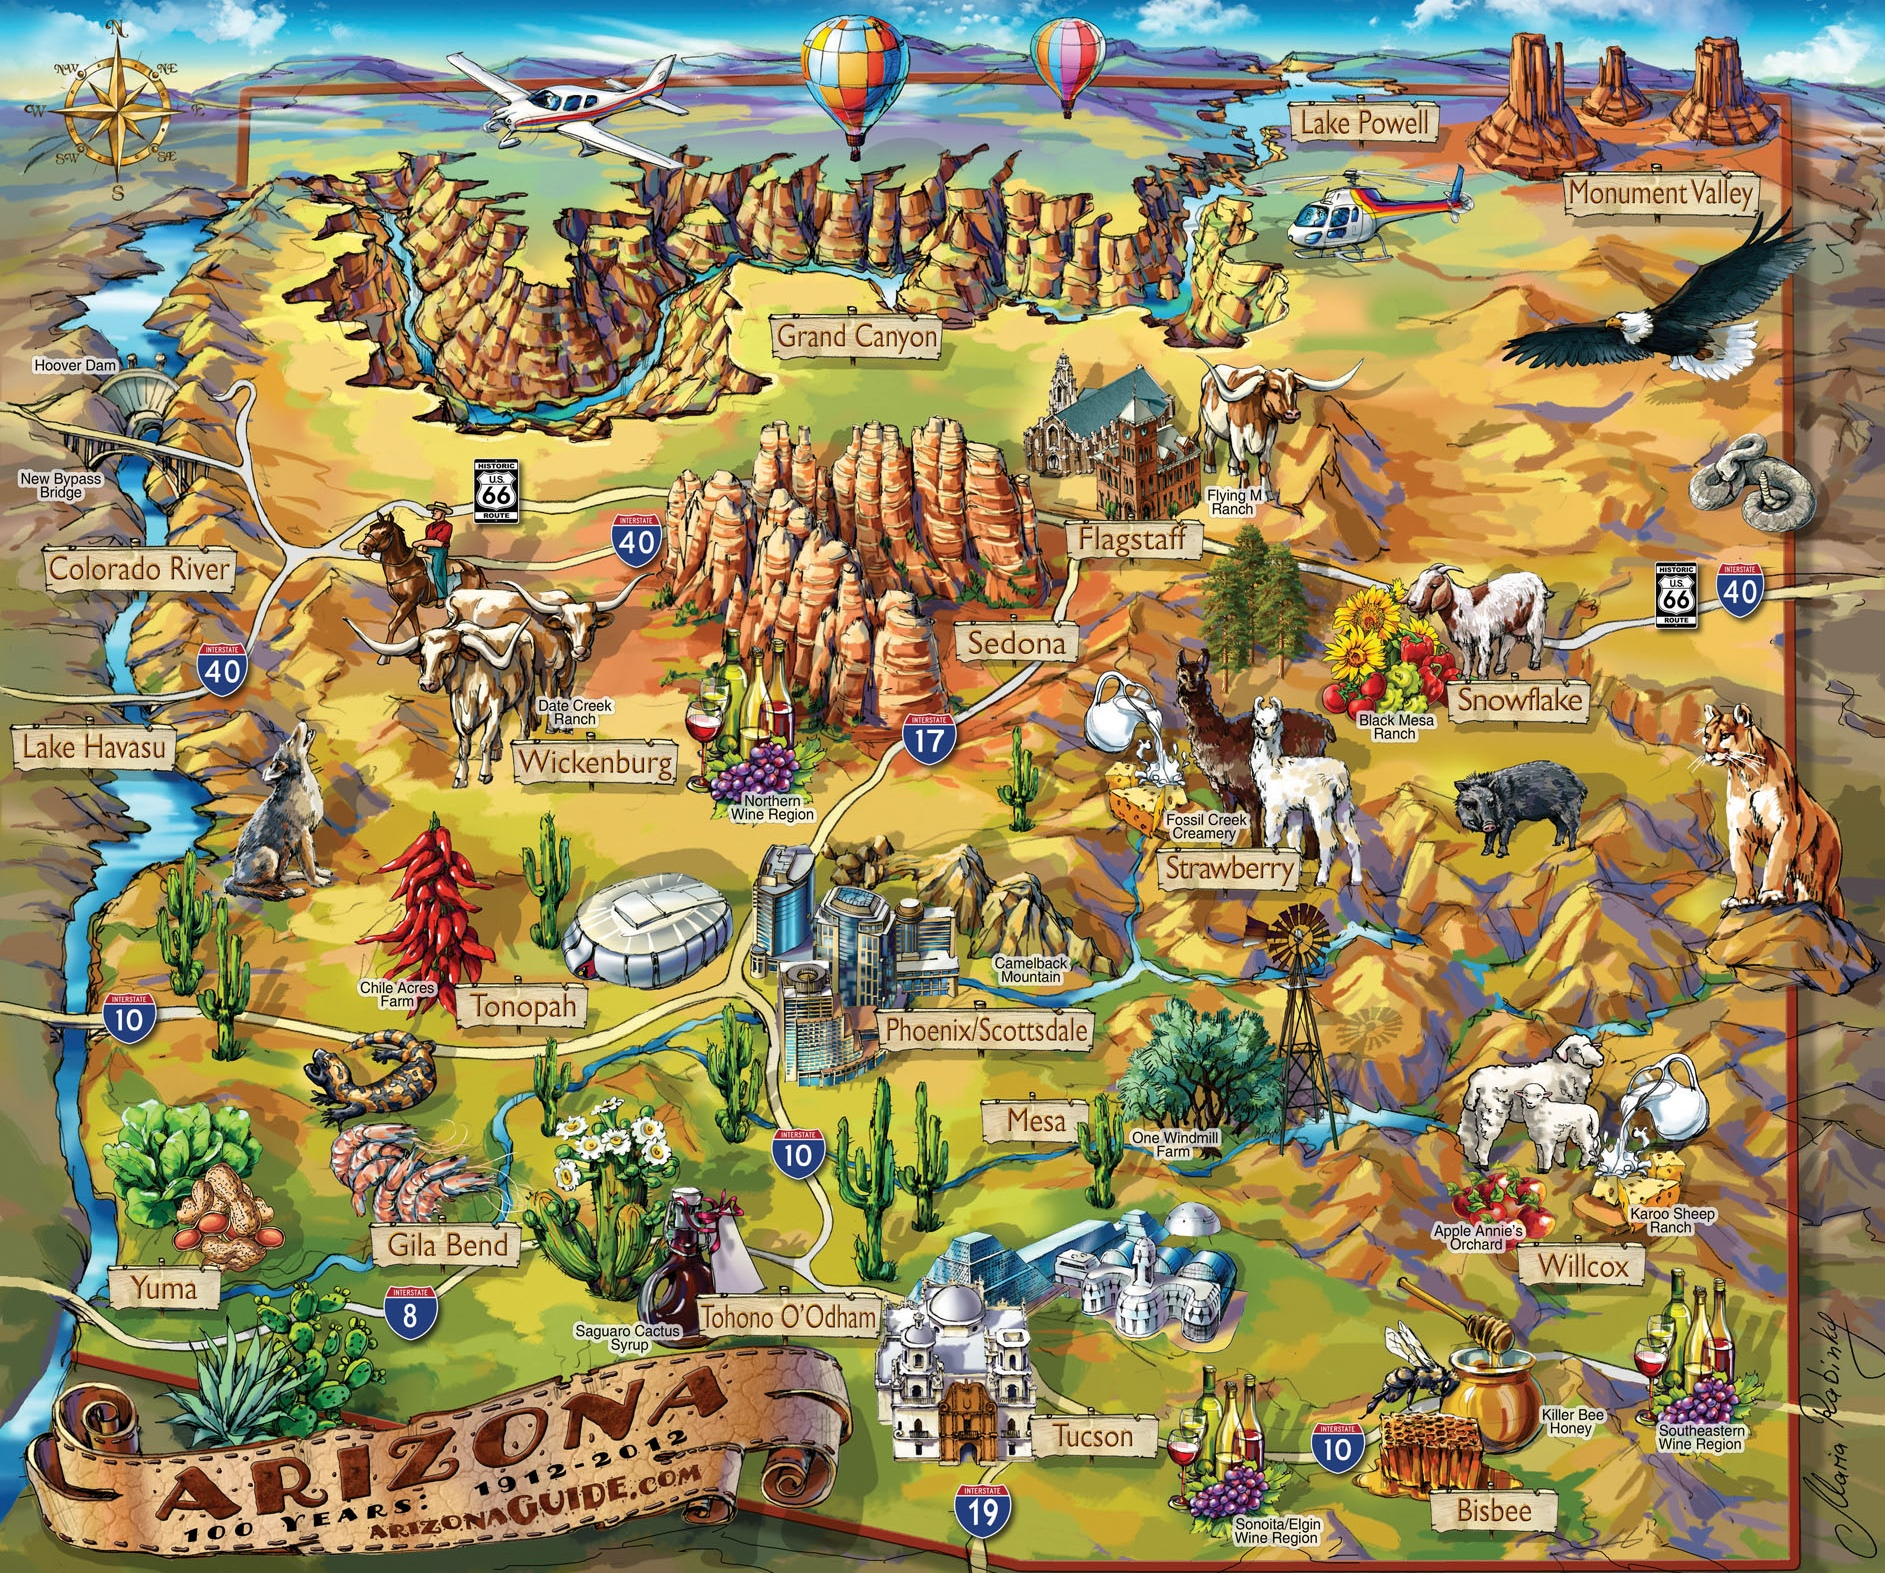 Arizona Points Of Interest Map.Arizona Travel Illustrated Map